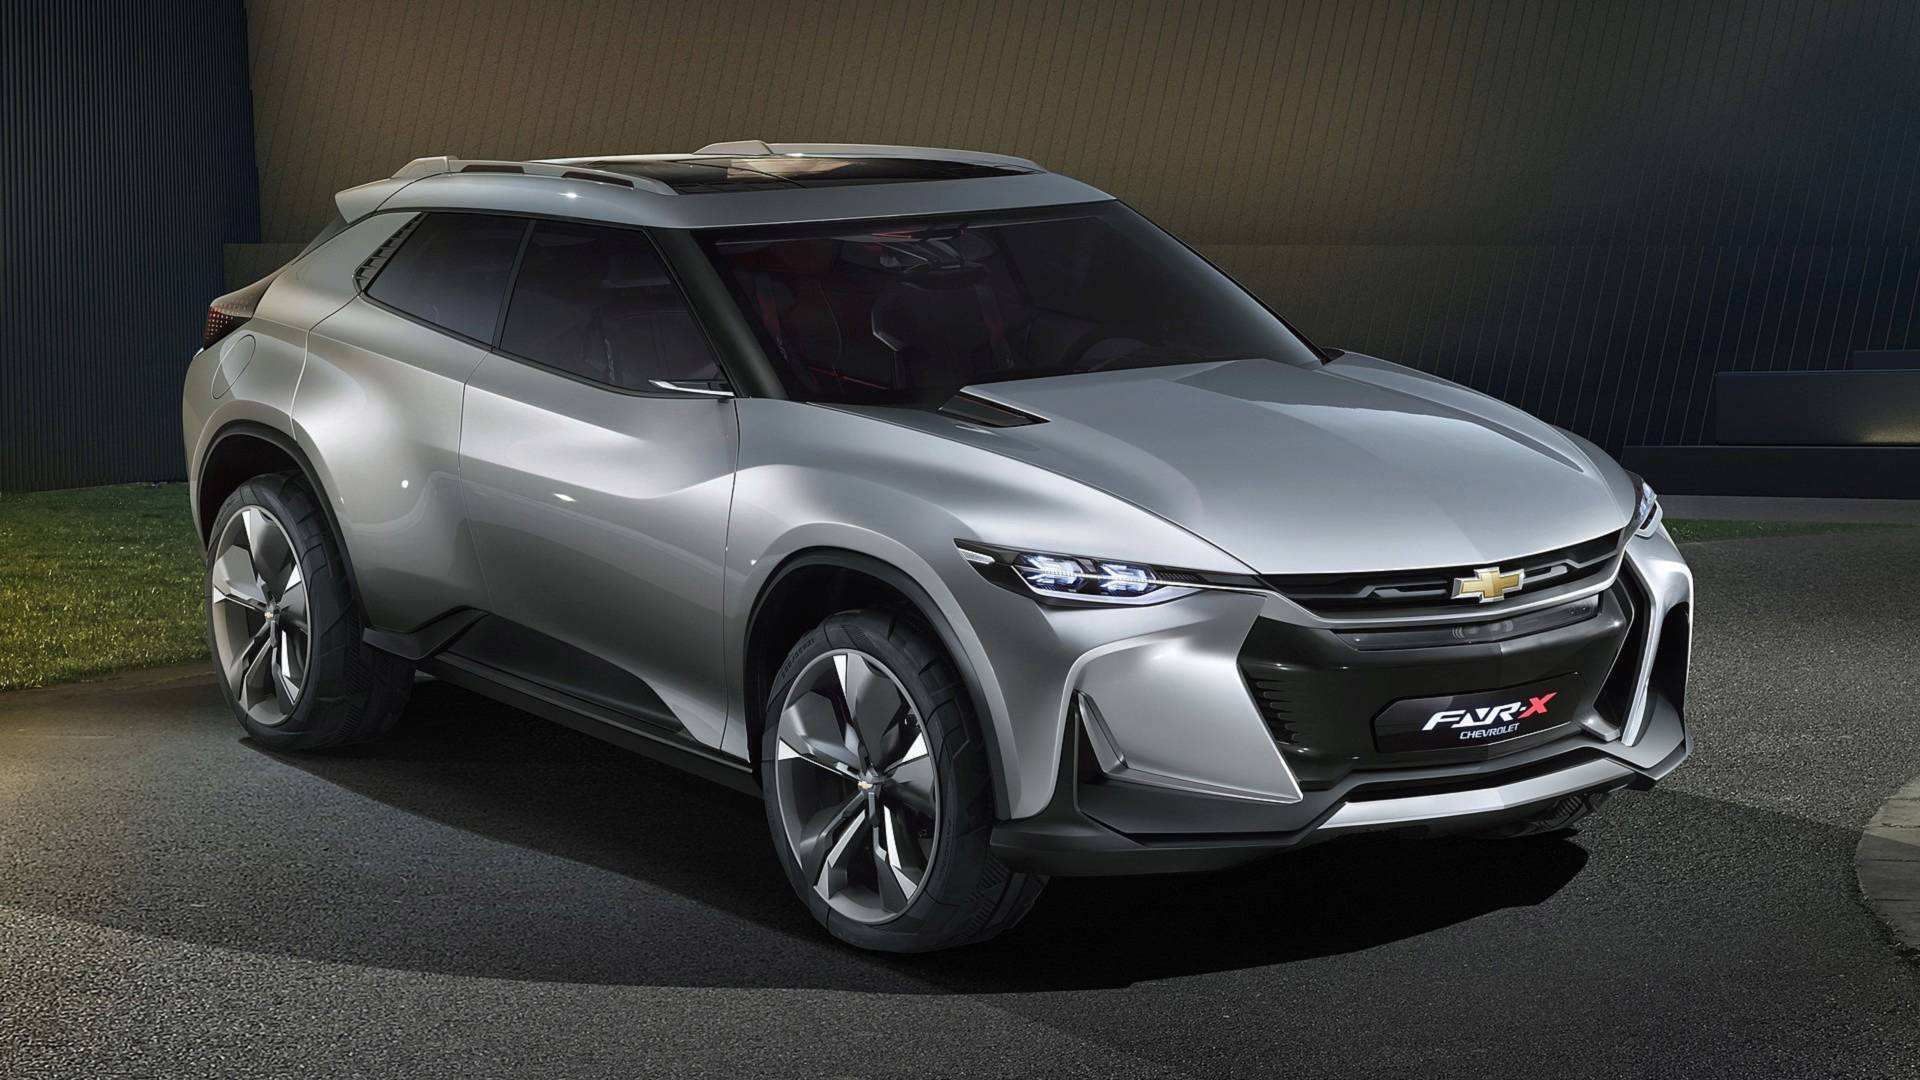 56 All New Chevrolet New Models 2020 Concept